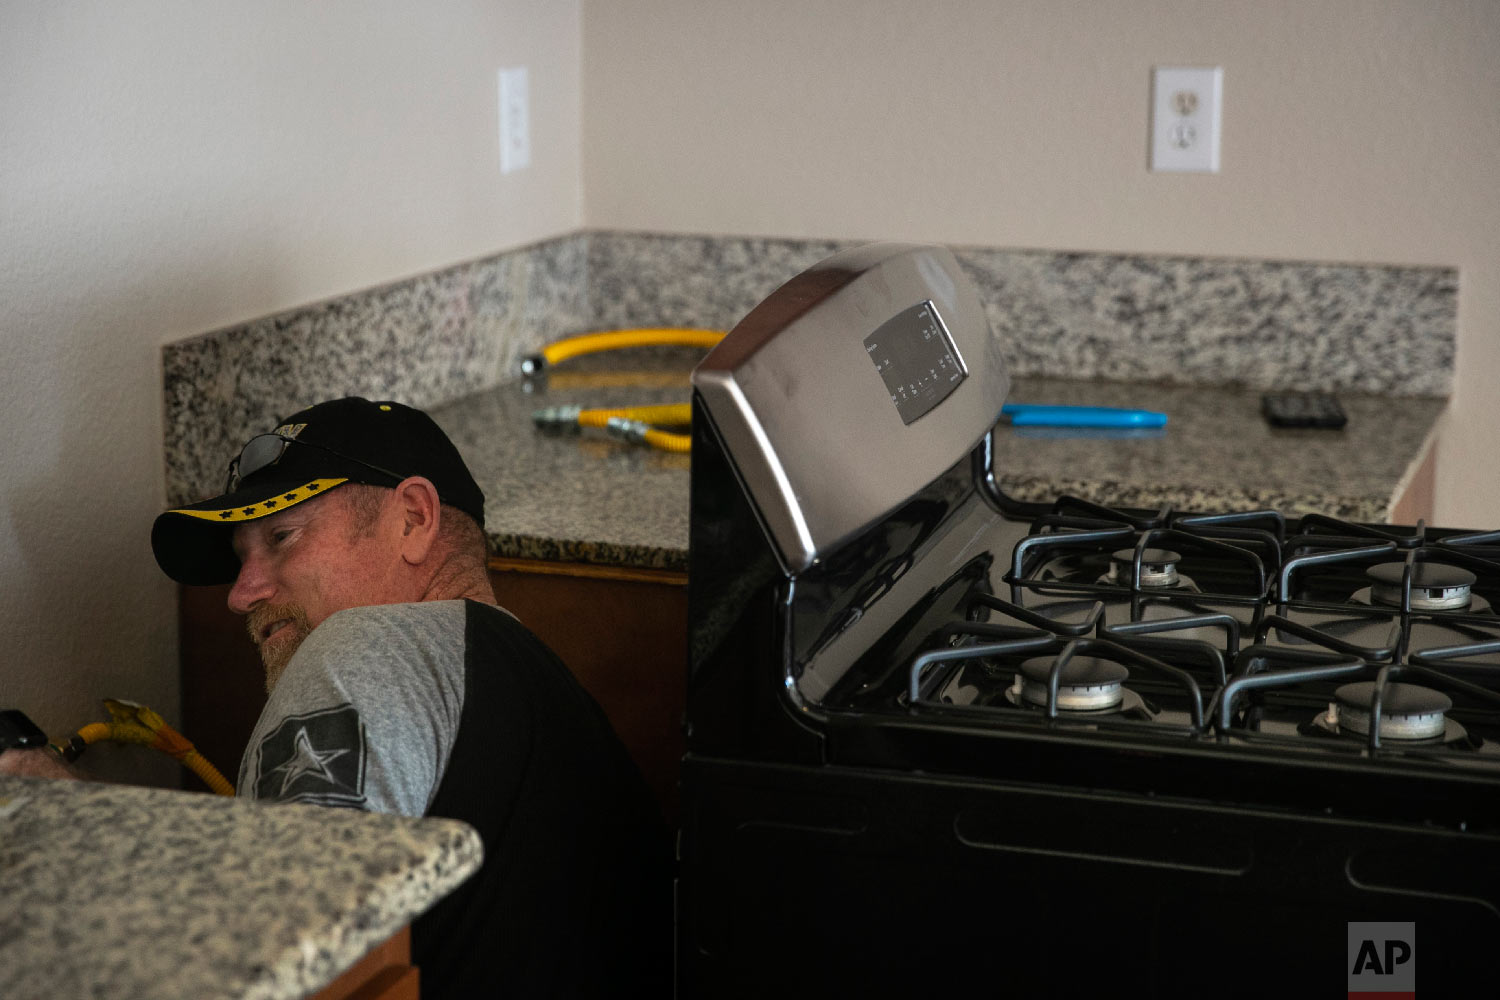 Chris George, a federal employee furloughed from his job as a forestry technician supervisor for the U.S. Department of Agriculture Forest Service, installs a gas stove Saturday, Jan. 19, 2019, in Fontana, Calif. (AP Photo/Jae C. Hong)